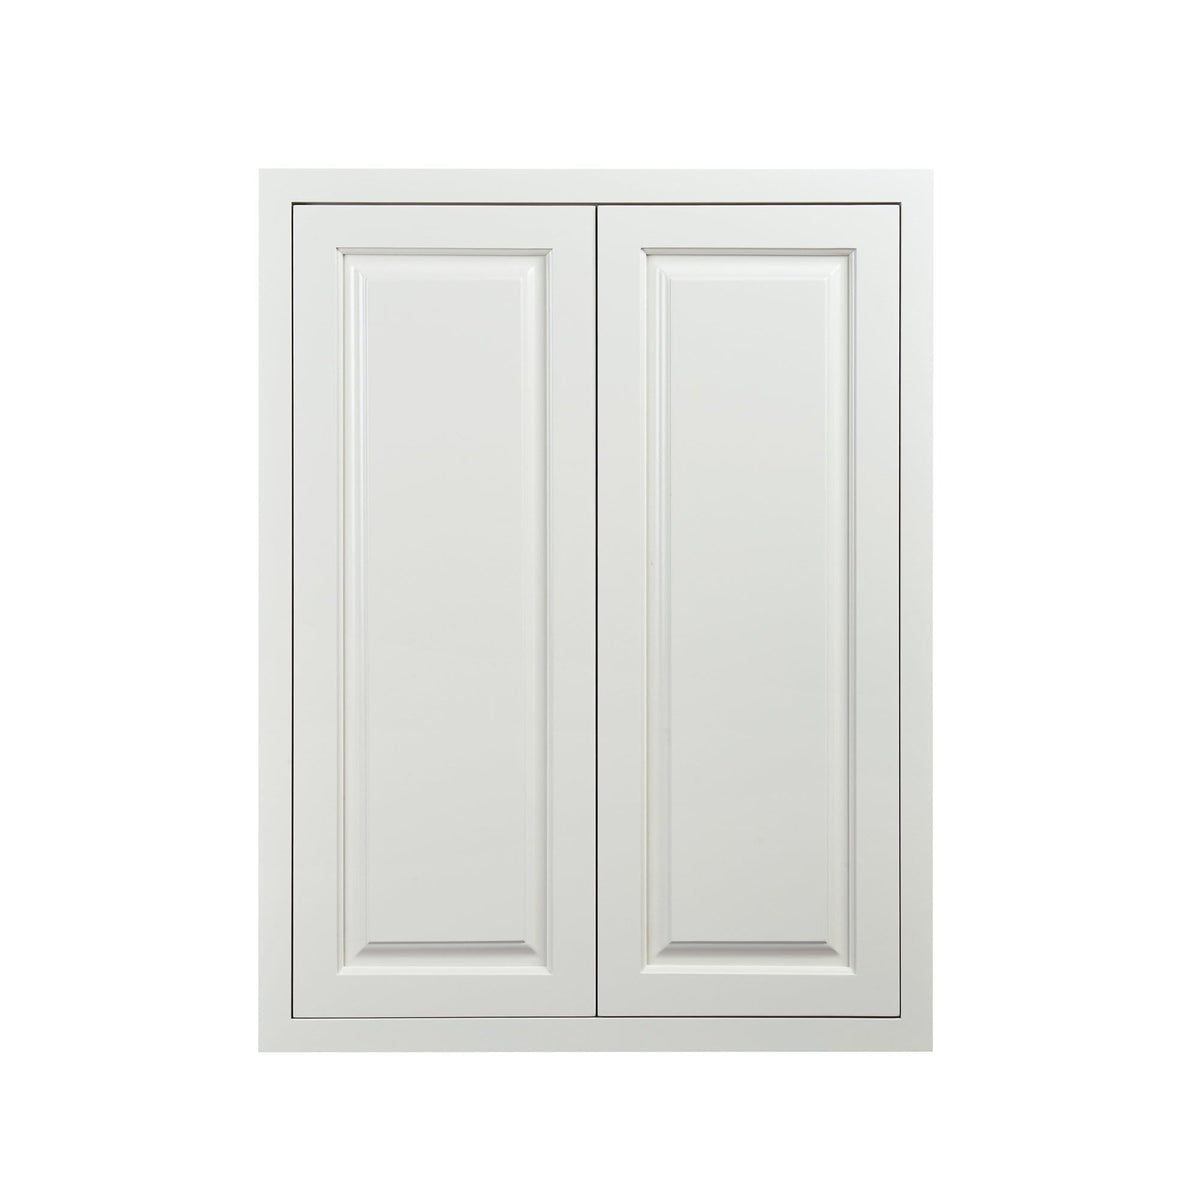 39 Tall Vintage White Inset Raised Panel Wall Cabinet Double Door 24 27 30 33 36 Rta Wholesalers